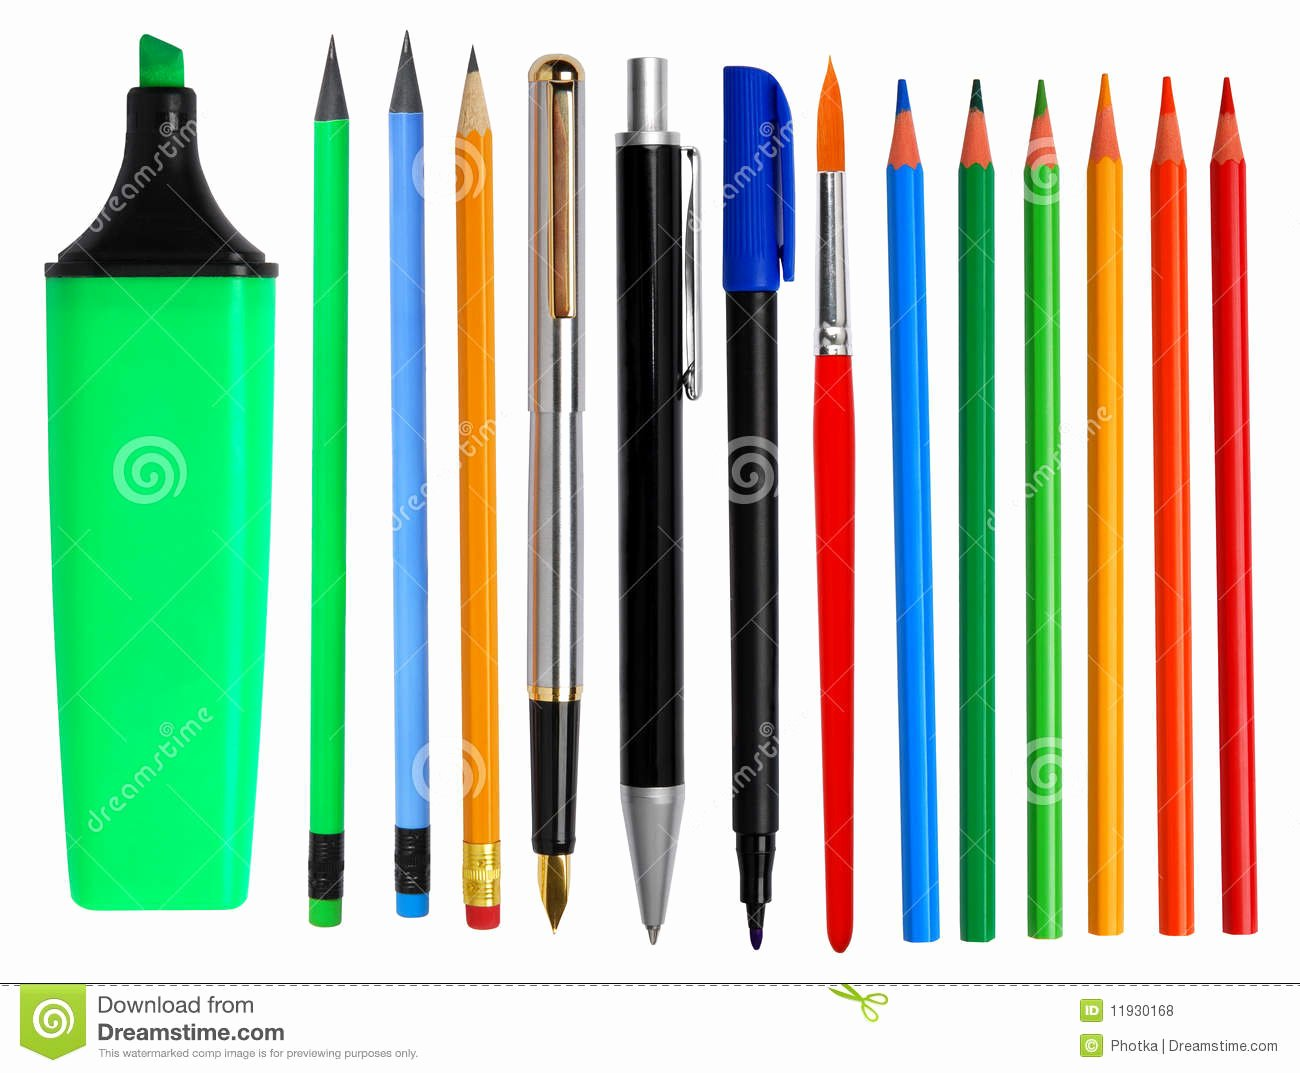 A Picture Of A Pencil Inspirational Pens and Pencils Stock Photo Image Of School Instrument